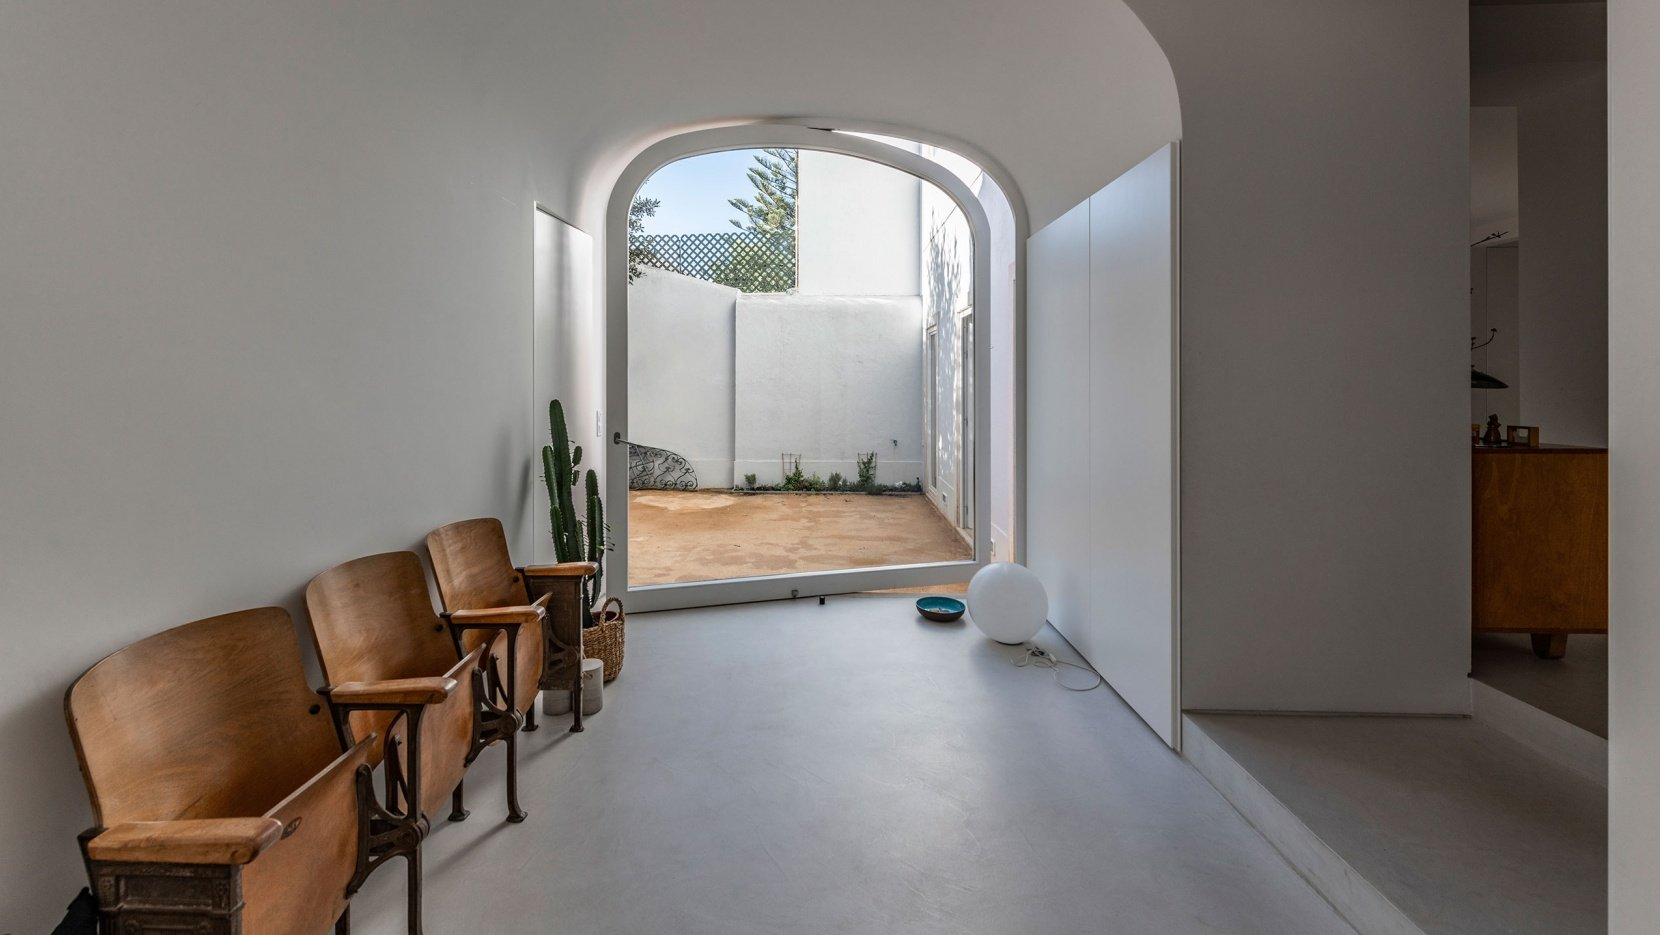 This is an entrance to the inner courtyard, with a pivot door and vintage wooden chairs